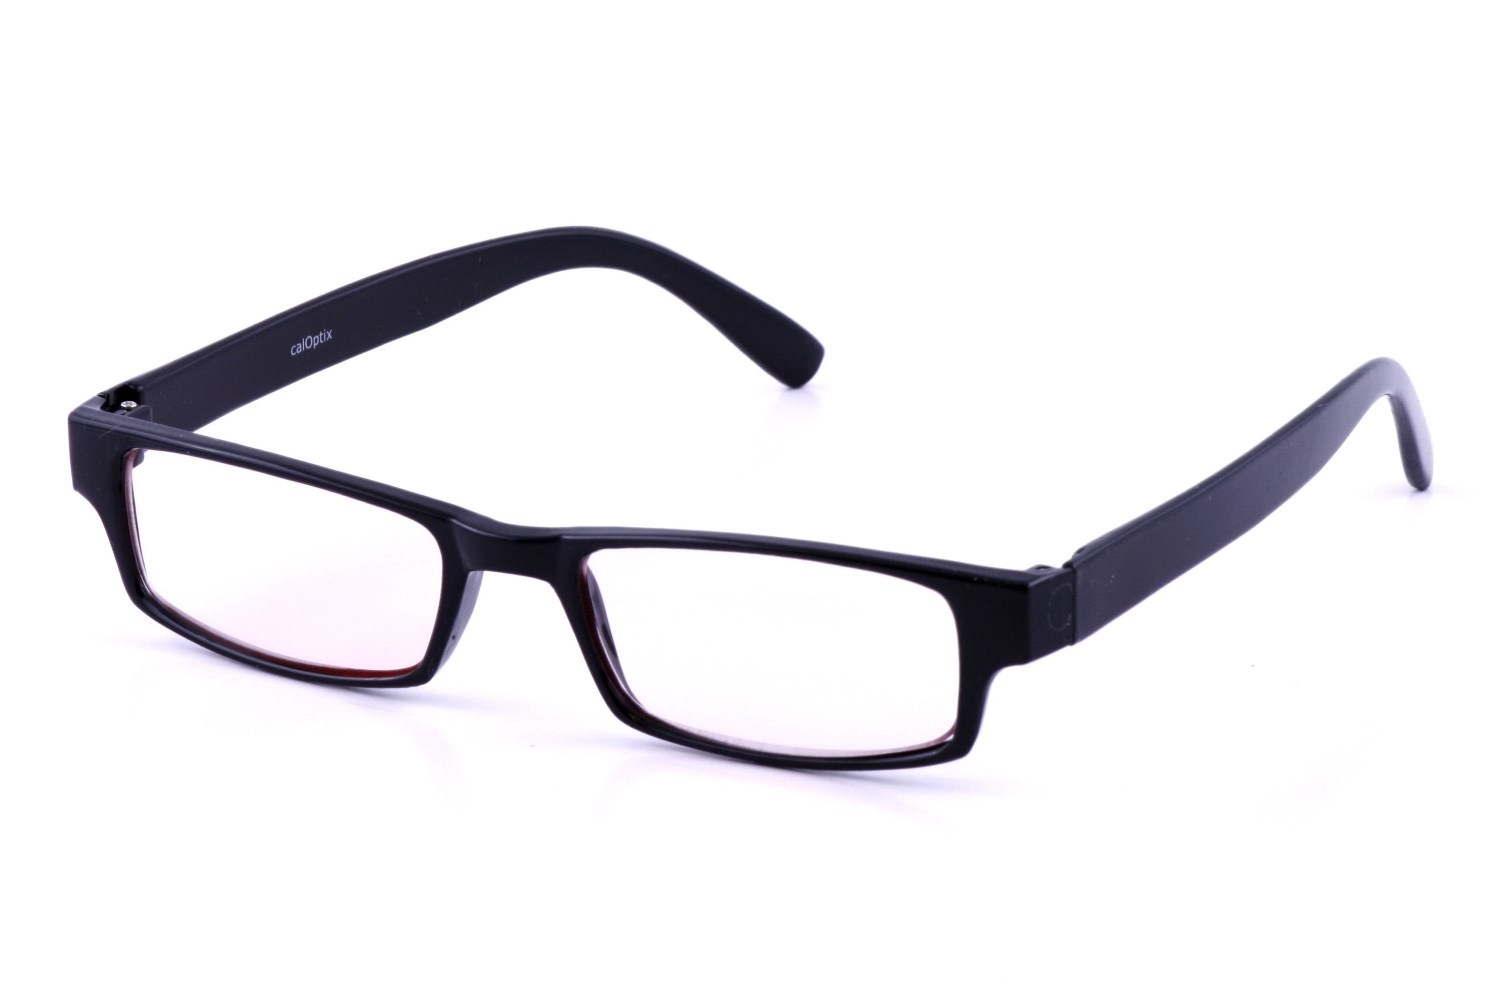 Black Frame Accessory Glasses : Gallery For > Black Rectangle Frame Glasses